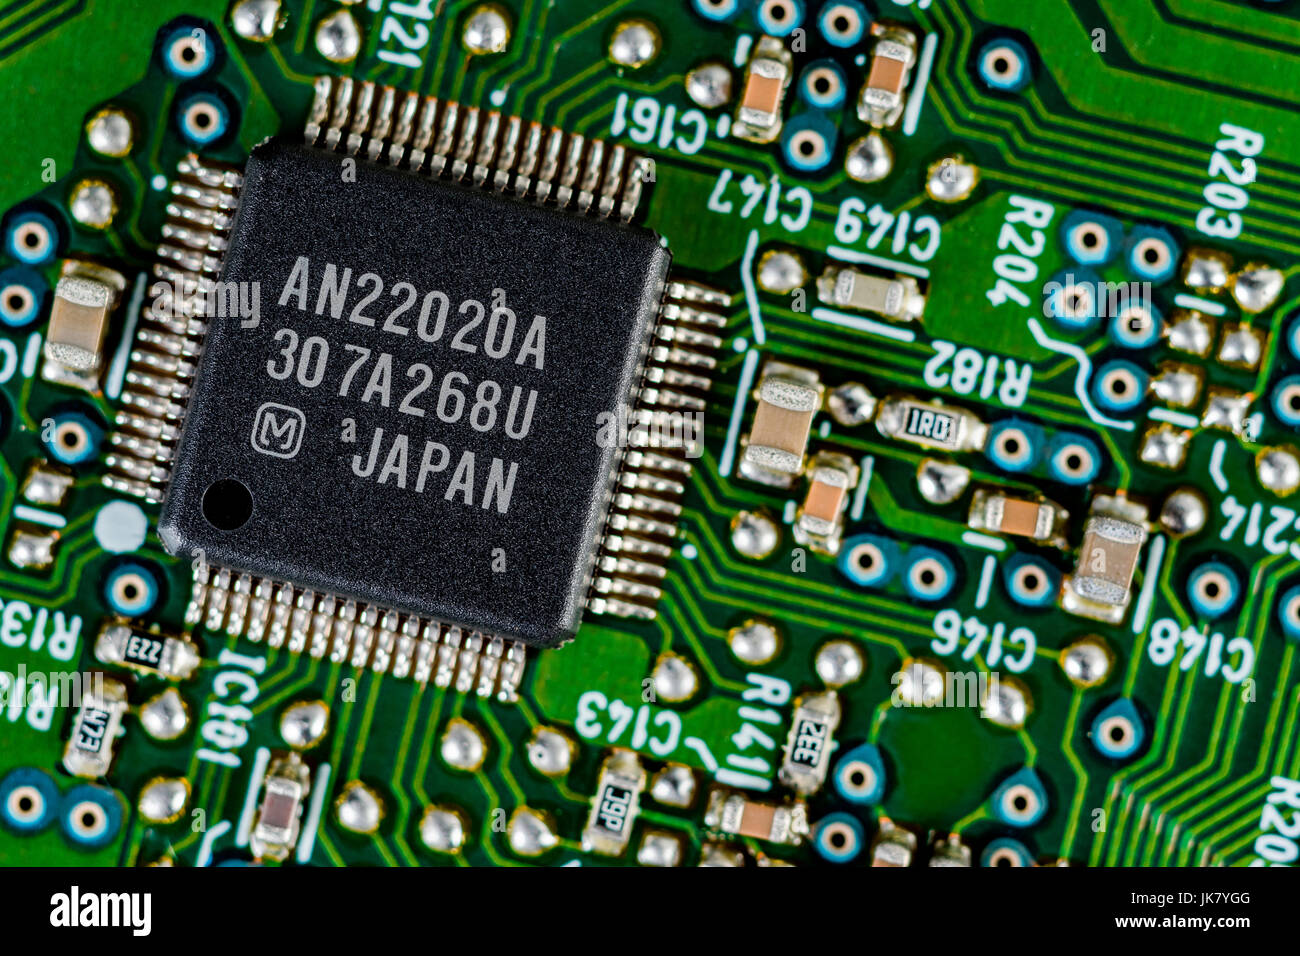 surface mount technology smt components on a green printed circuit rh alamy com circuit board wiring connectors circuit board wiring colors